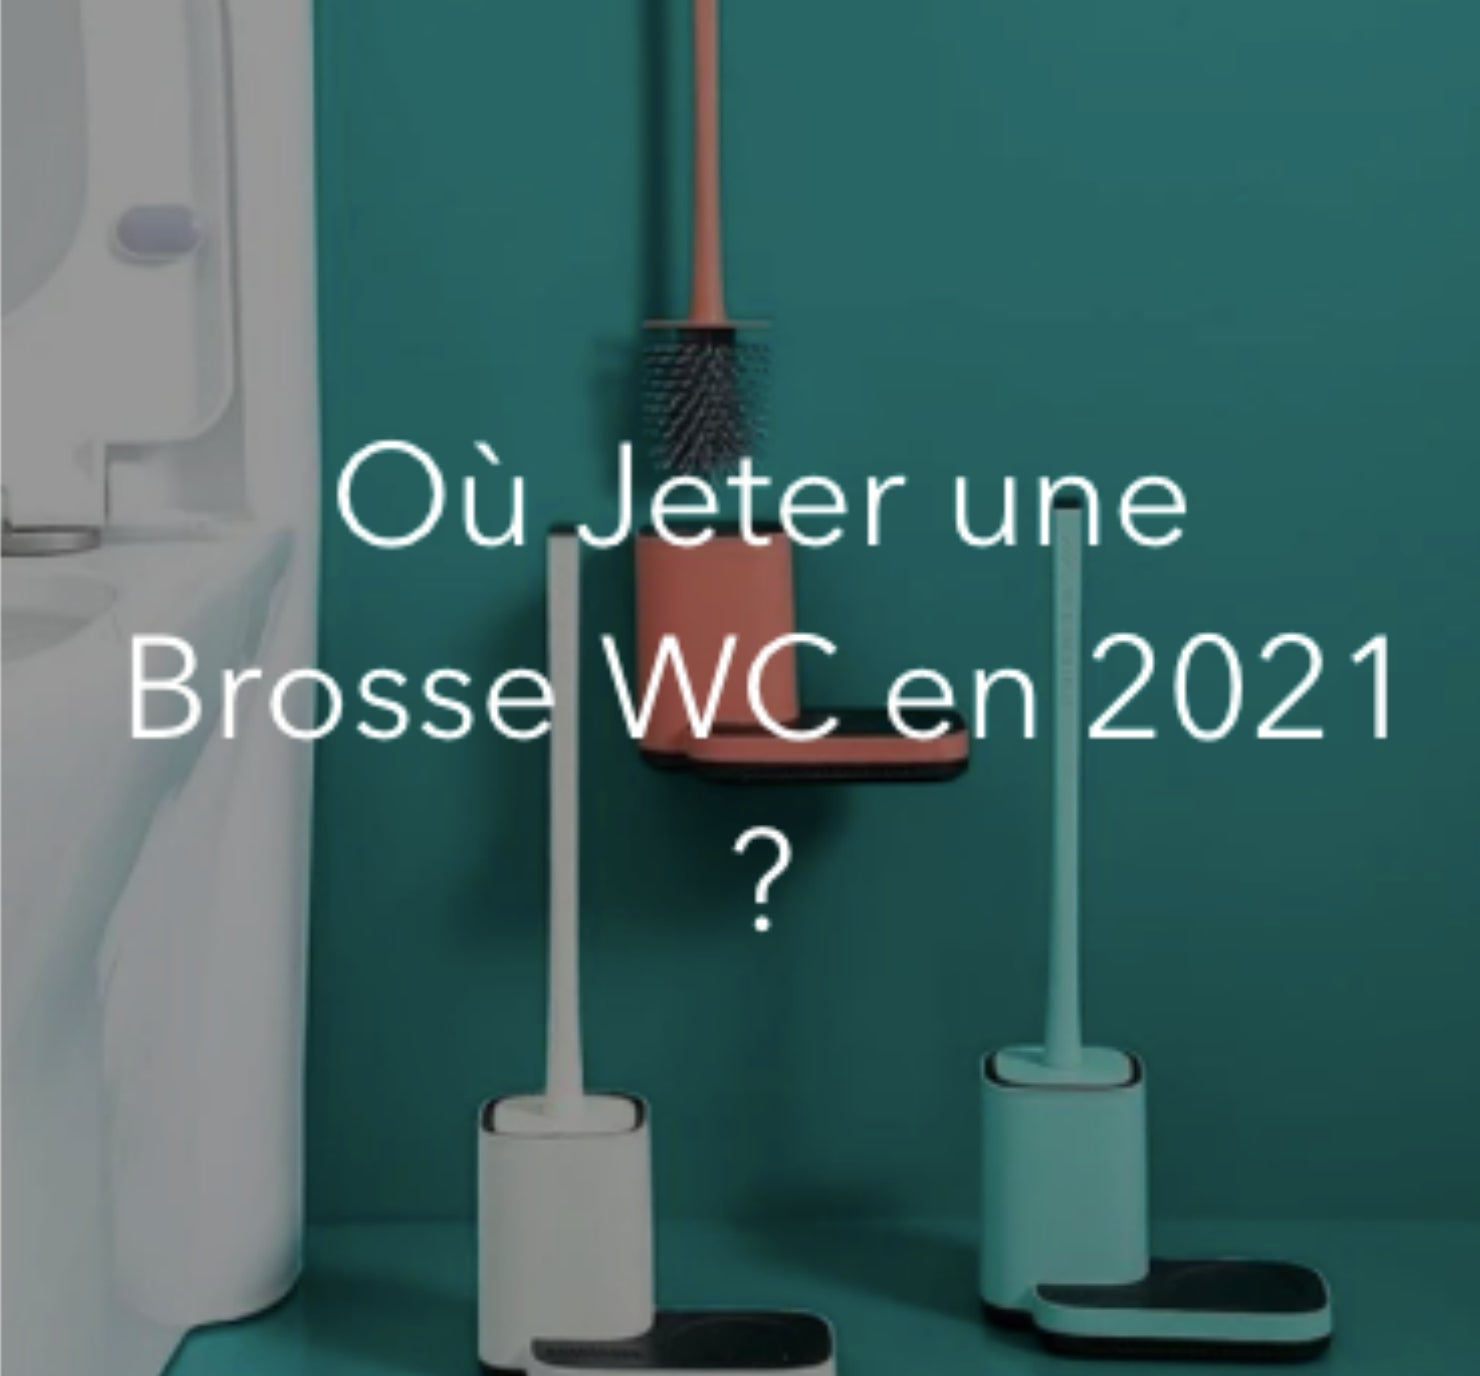 Peut-on-recycler-brosse-WC-blog-lepetitcoindesign.com